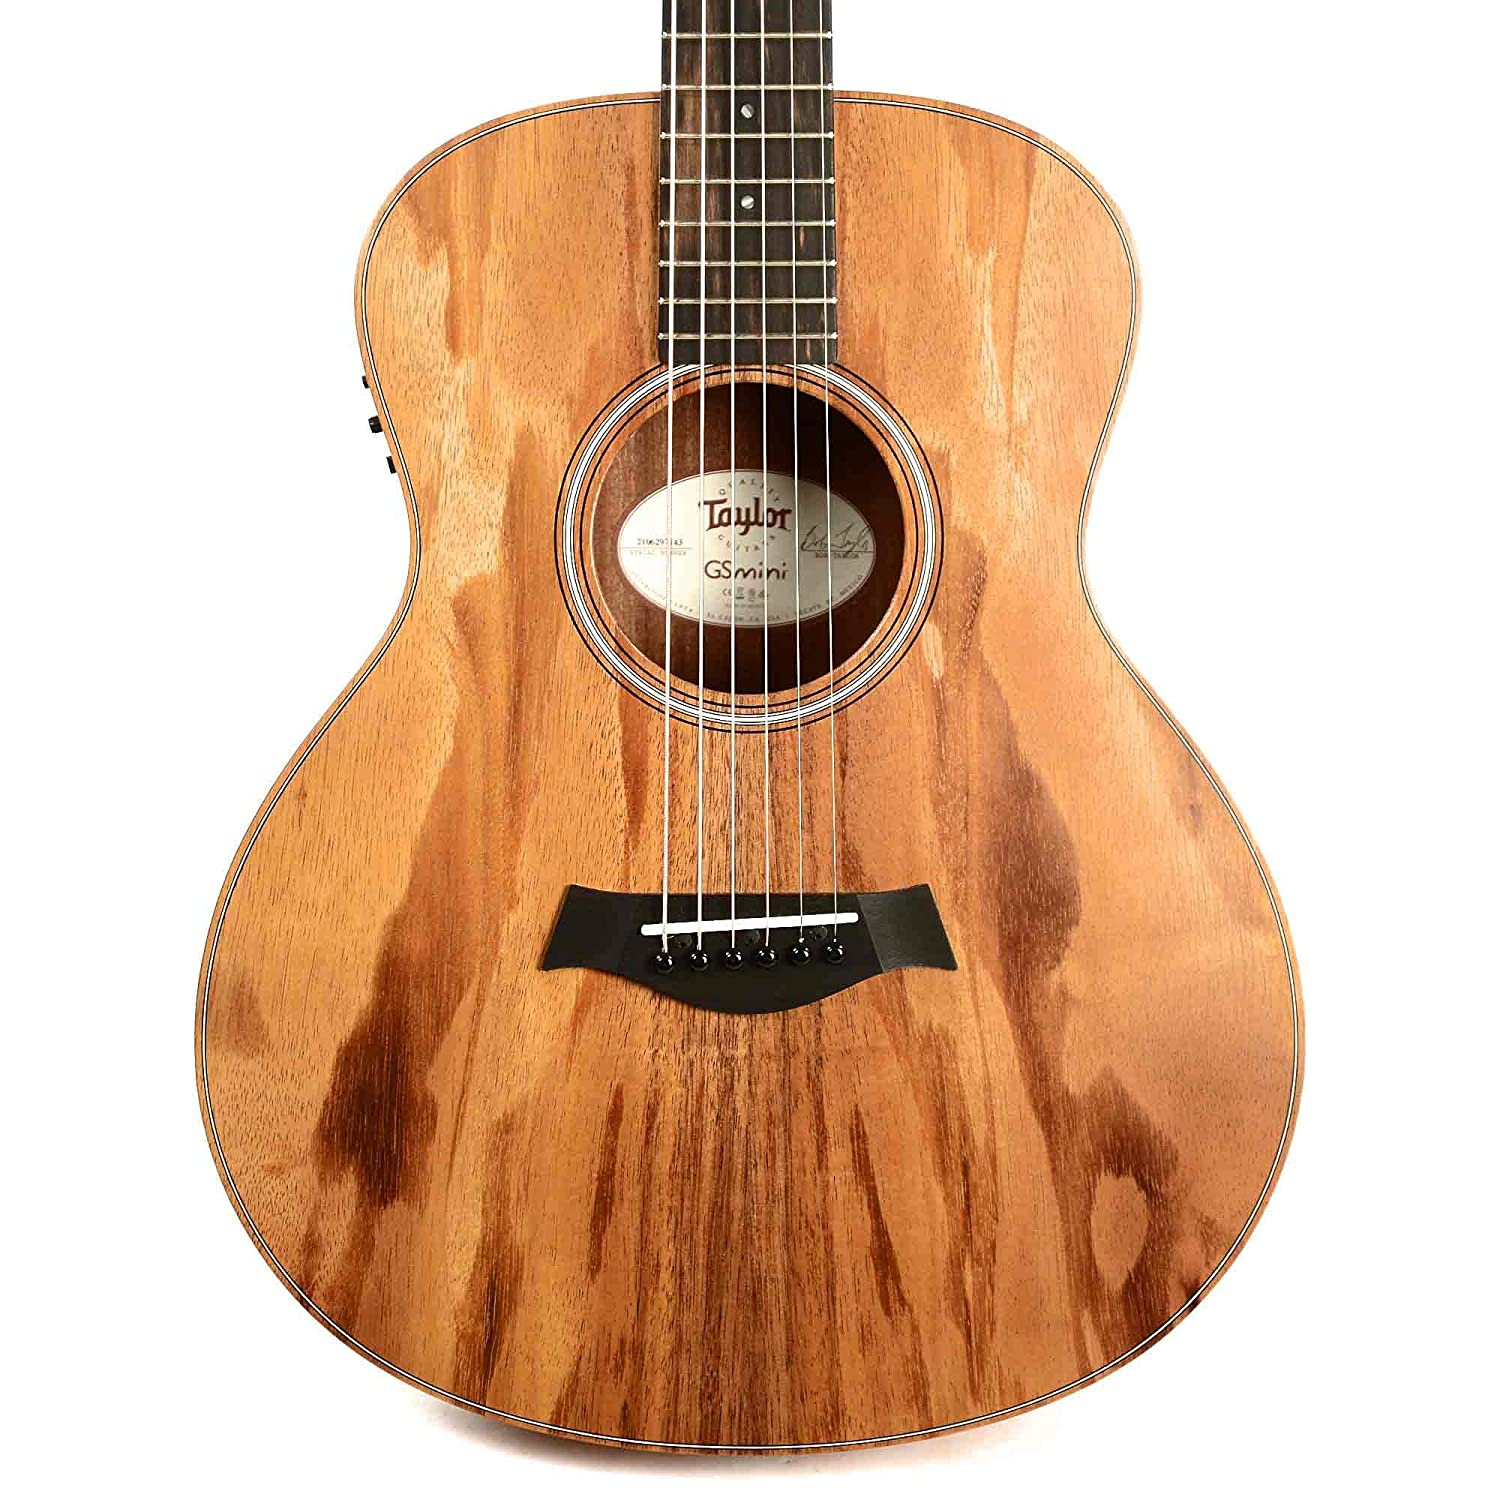 Taylor GS Mini Best Acoustic Guitar (Best For Home Use)